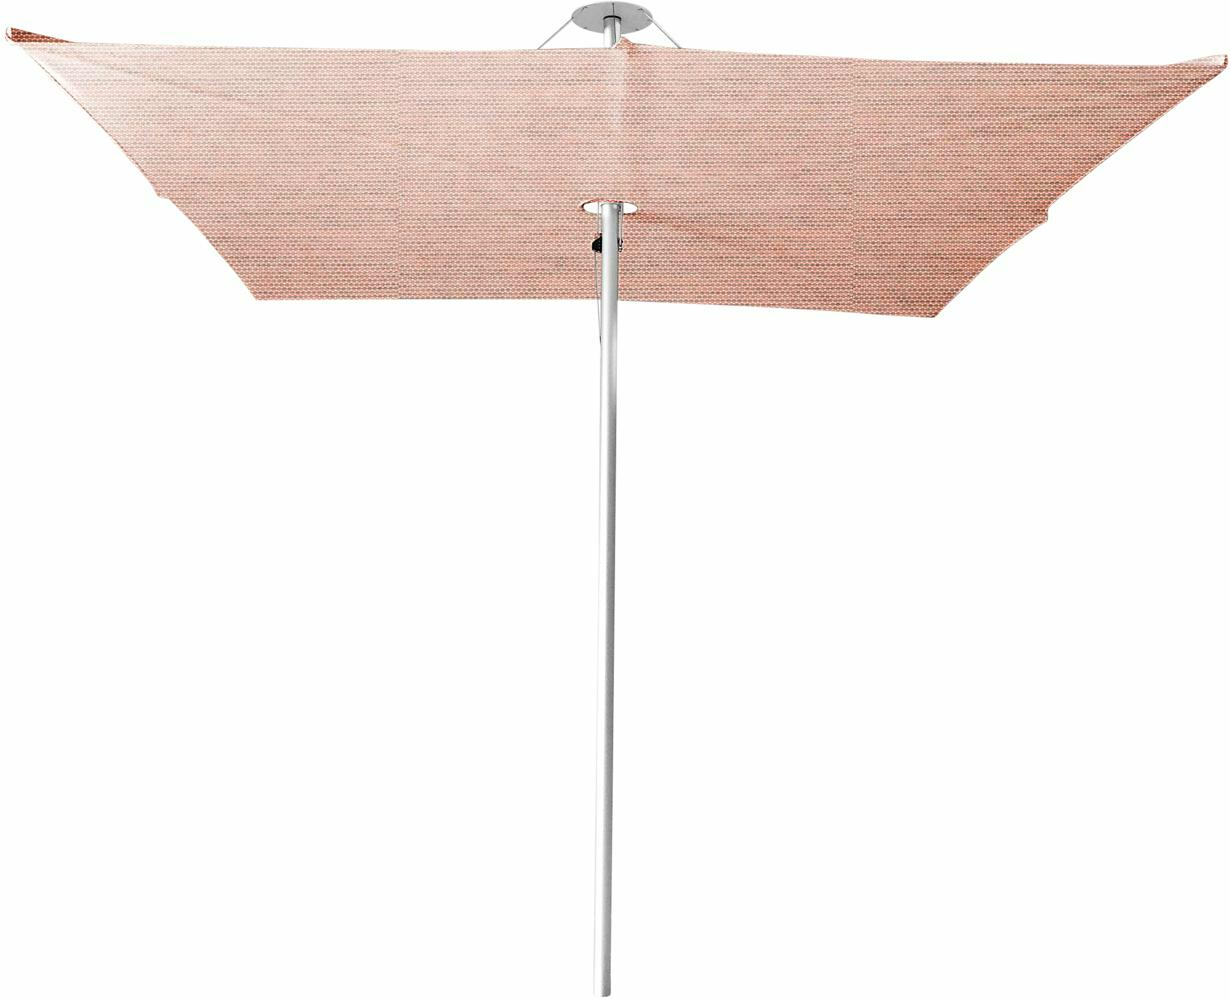 Infina canopy square 3 m in colour Blush